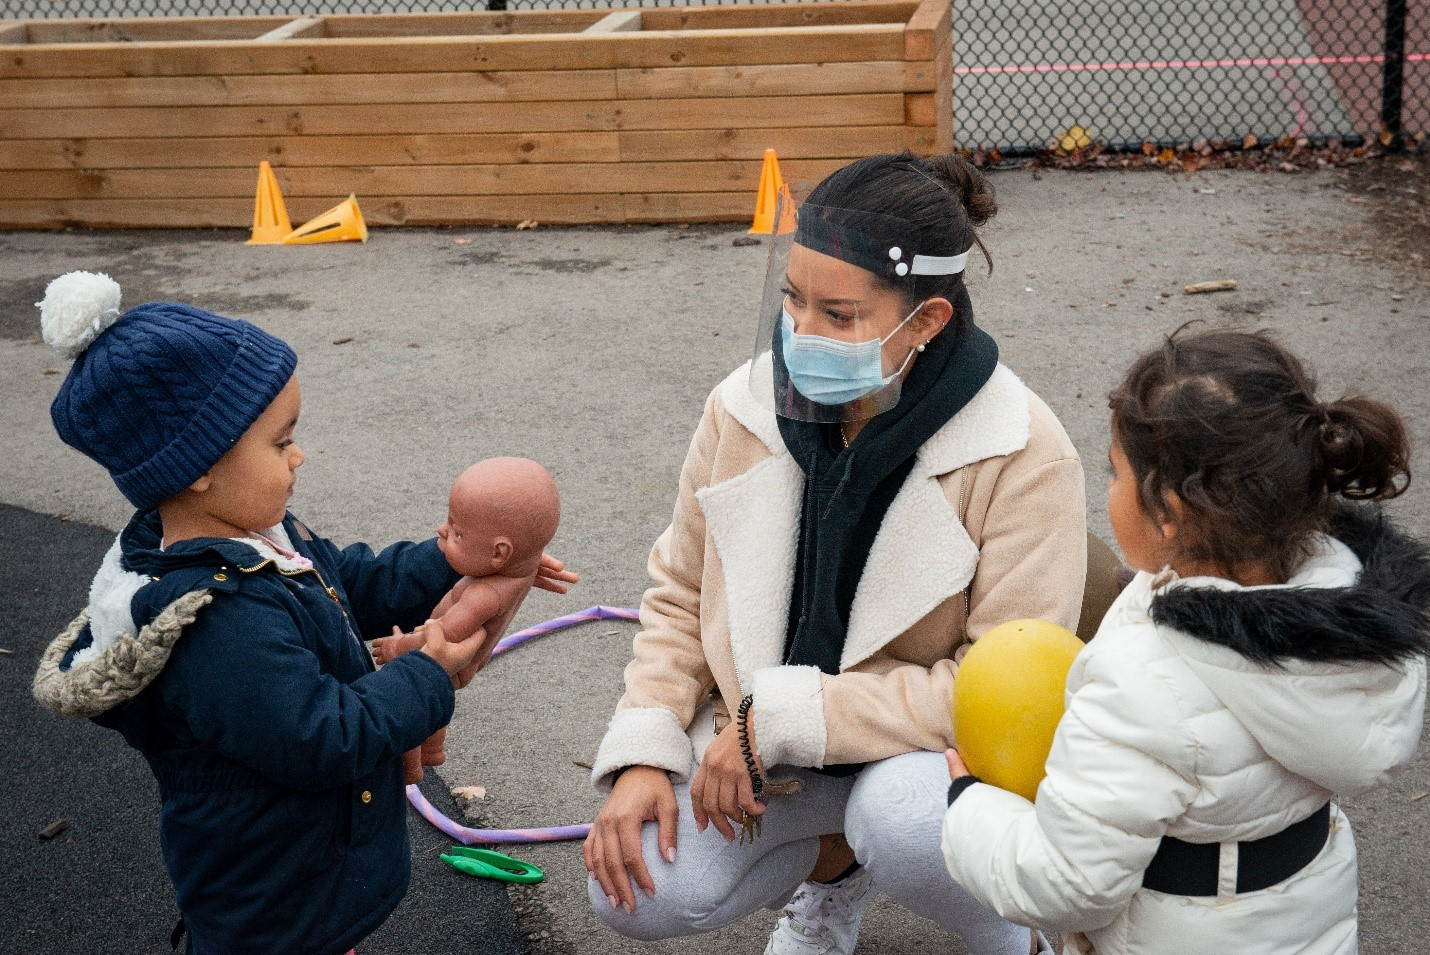 YMCA Child Care during COVID-19 a staff member wearing protective gear is outside during recess with 2 kids playing and smiling.